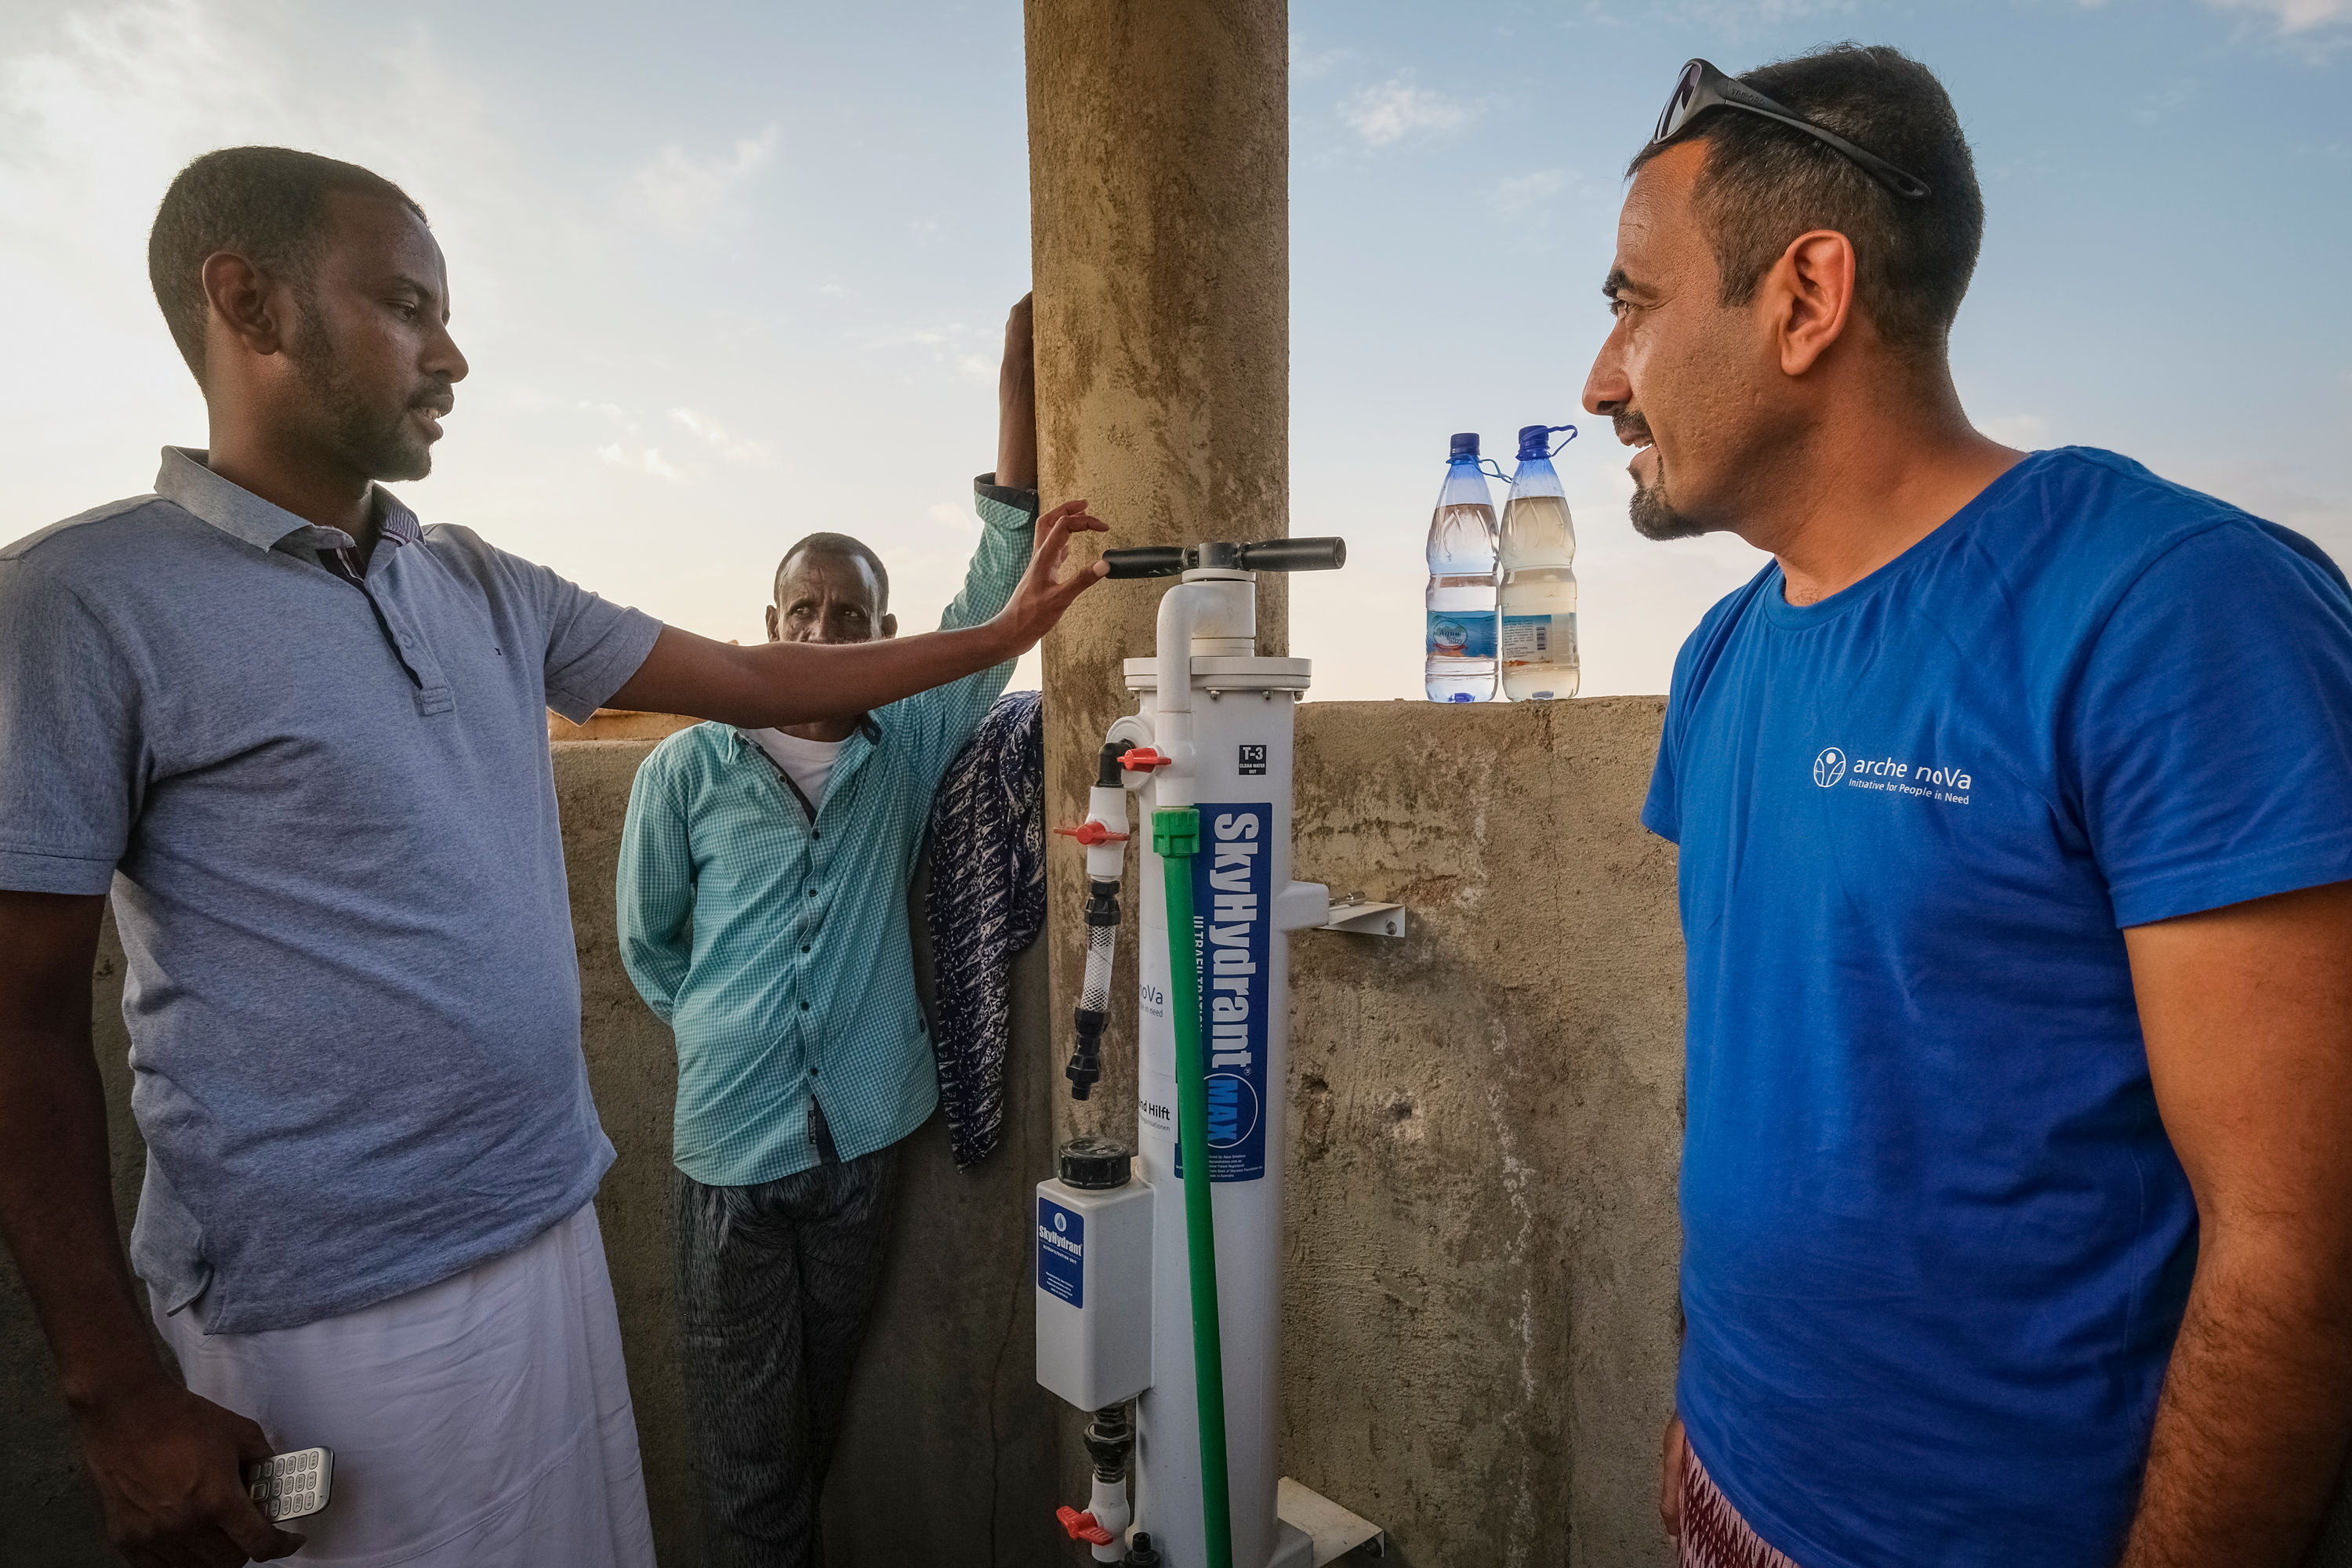 Three men at a drinking water filter